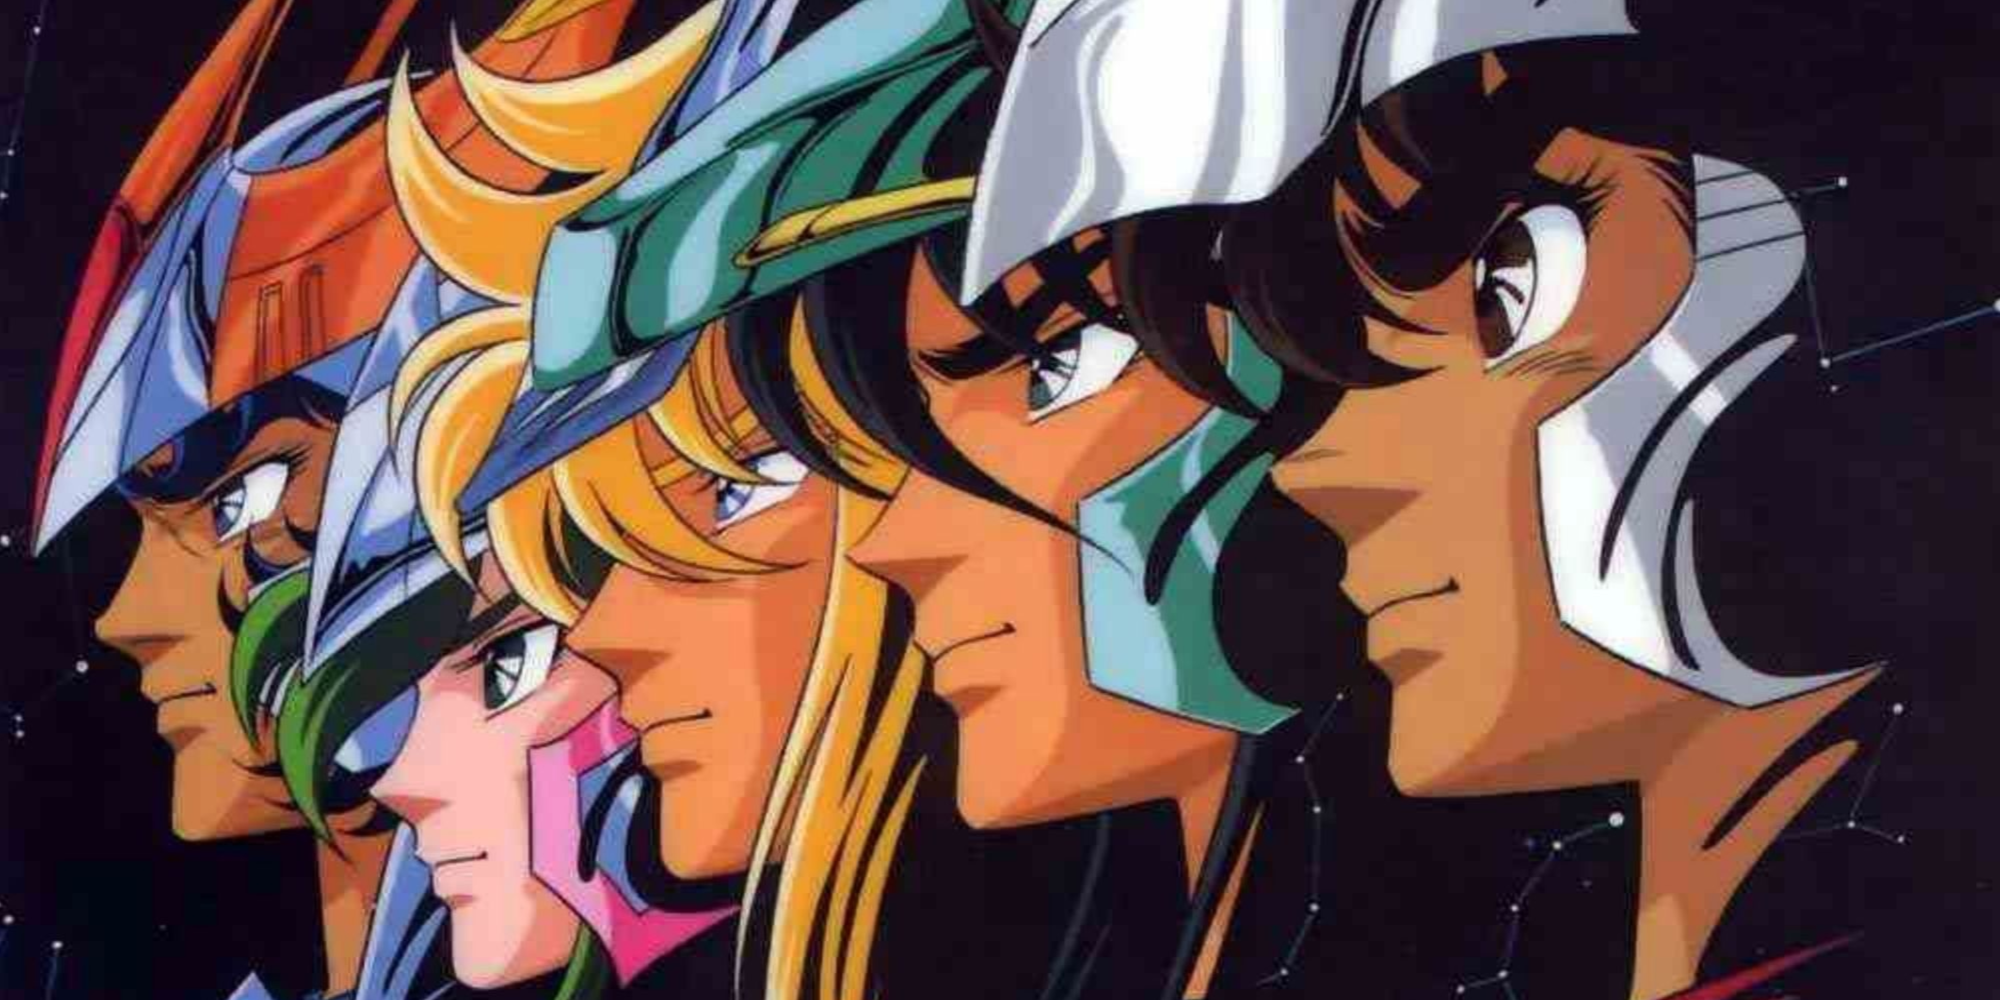 Saint Seiya: Where to Start With the Classic Anime Epic | CBR